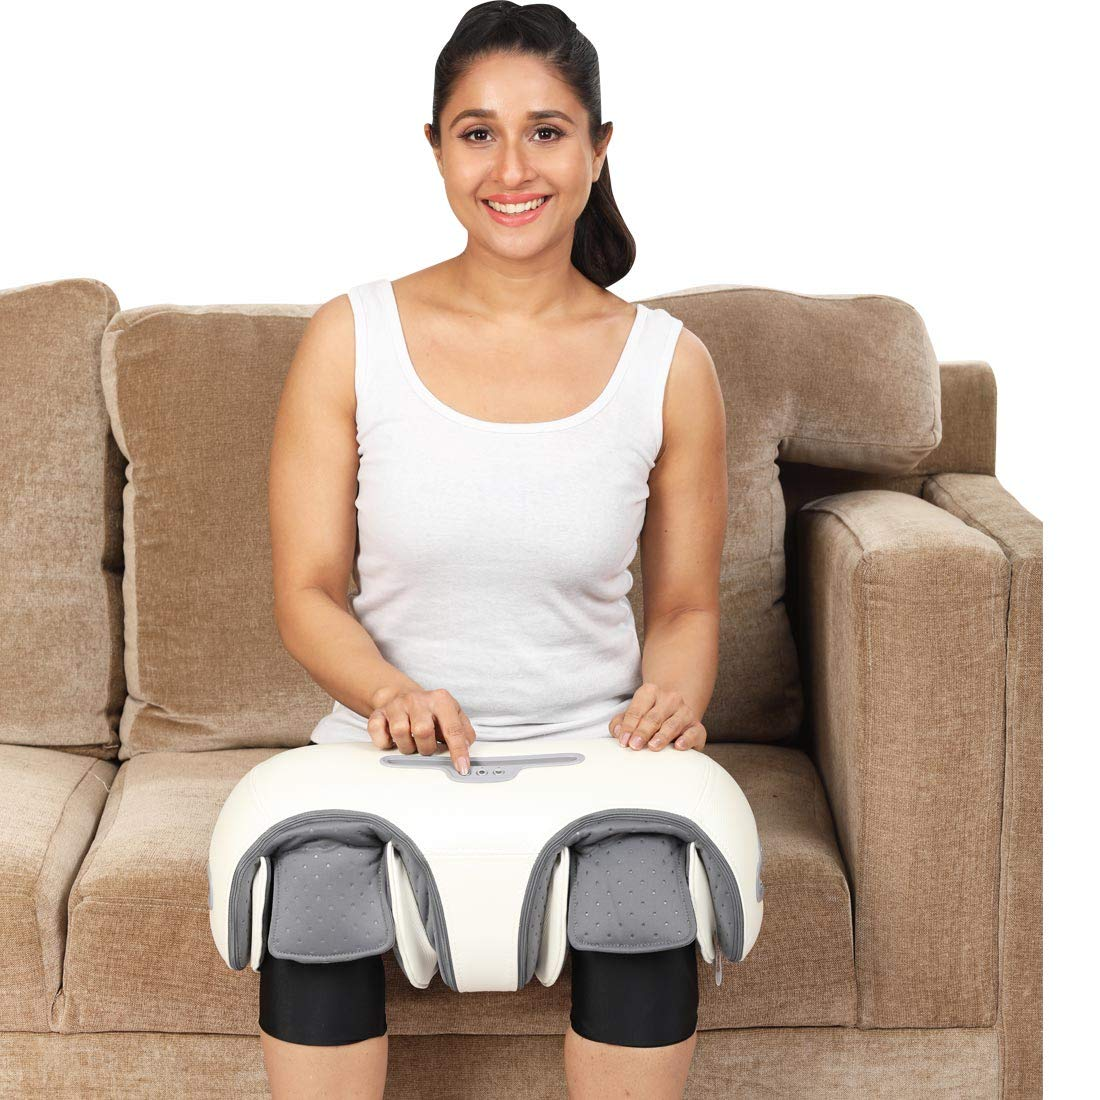 JSB HF156 Wireless Knee Joint Massager